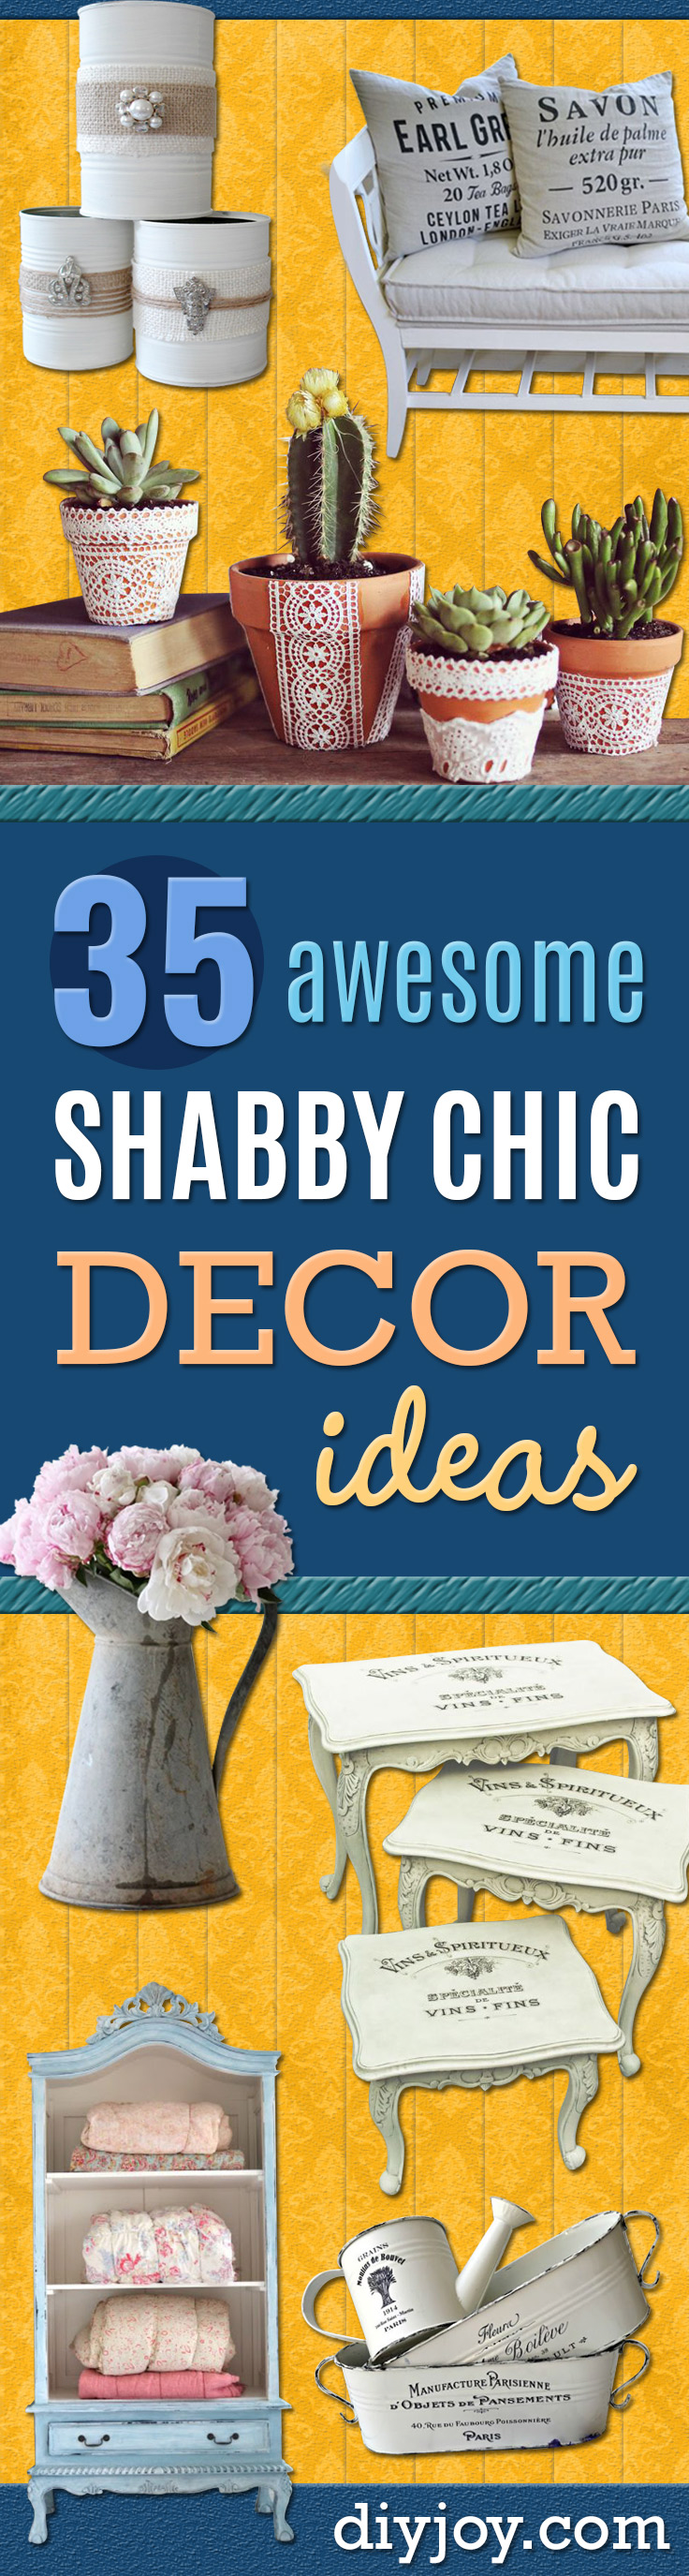 DIY Shabby Chic Decor Ideas - French Farmhouse and Vintage White Linens - Romantic Country Bedroom, Living Room, Bathroom Ideas, Distressed Furniture and Boho Crafts